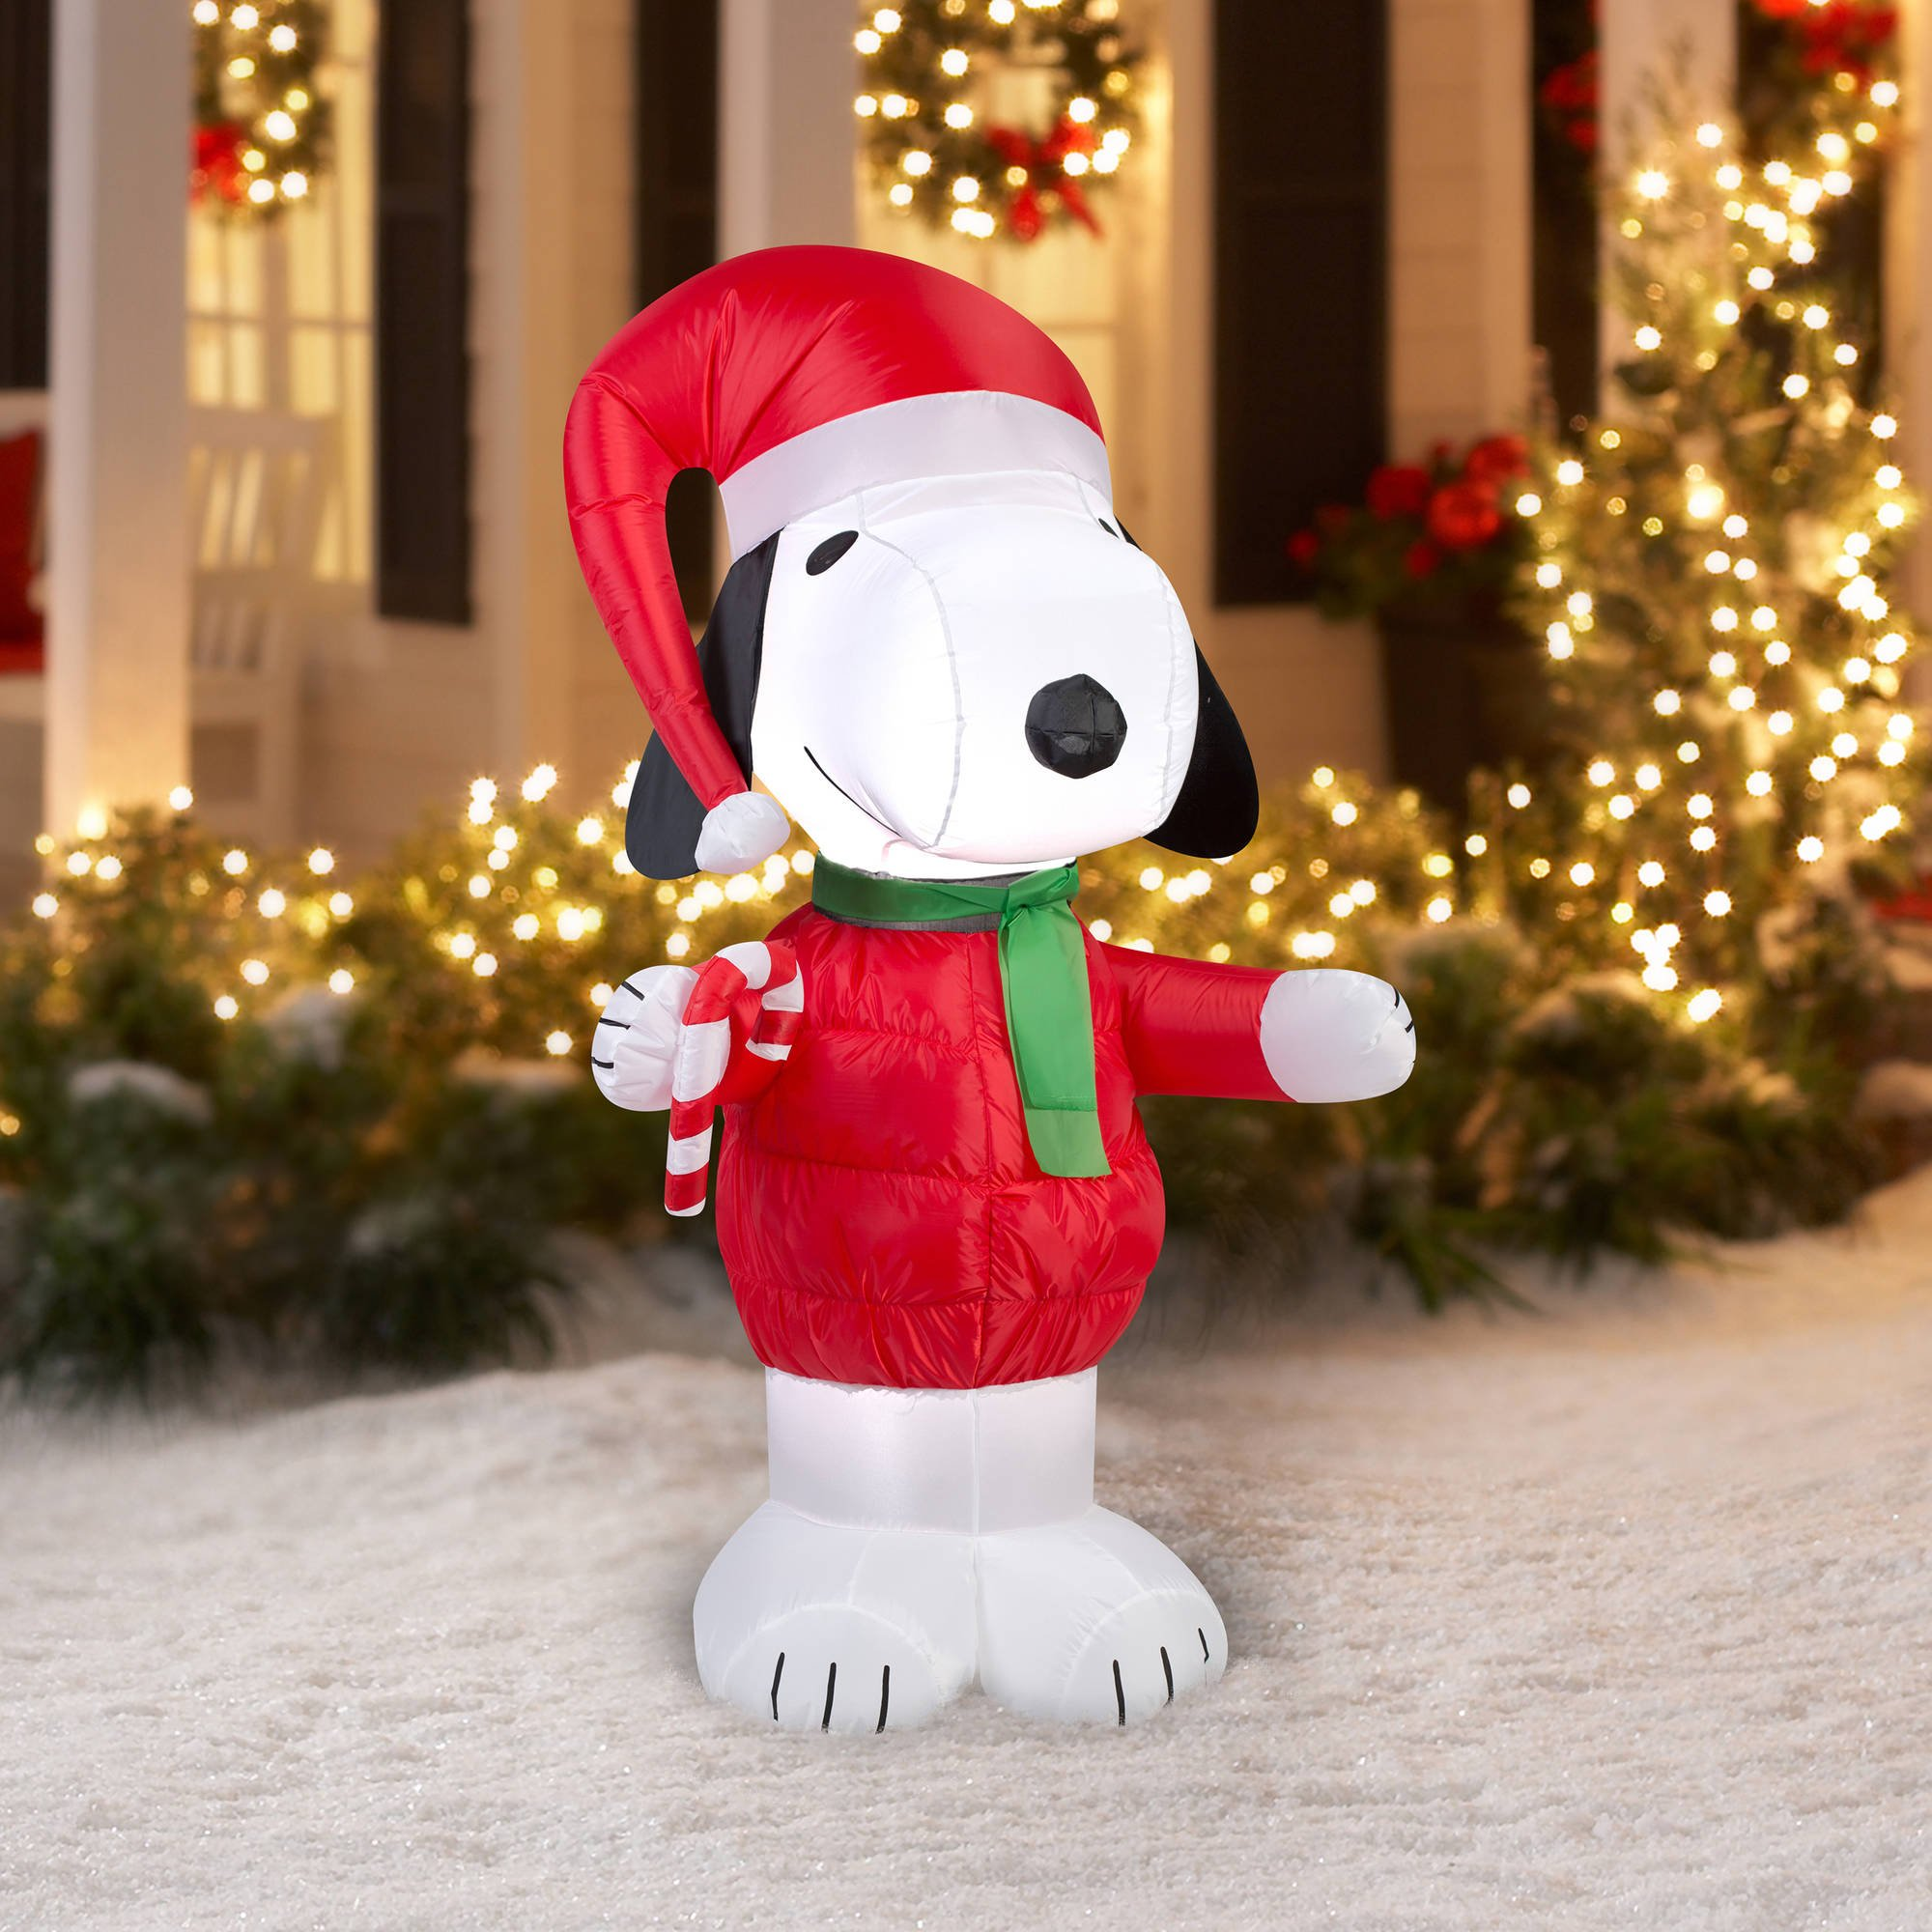 snoopy inflatable christmas yard decorations - Peanuts Christmas Lawn Decorations